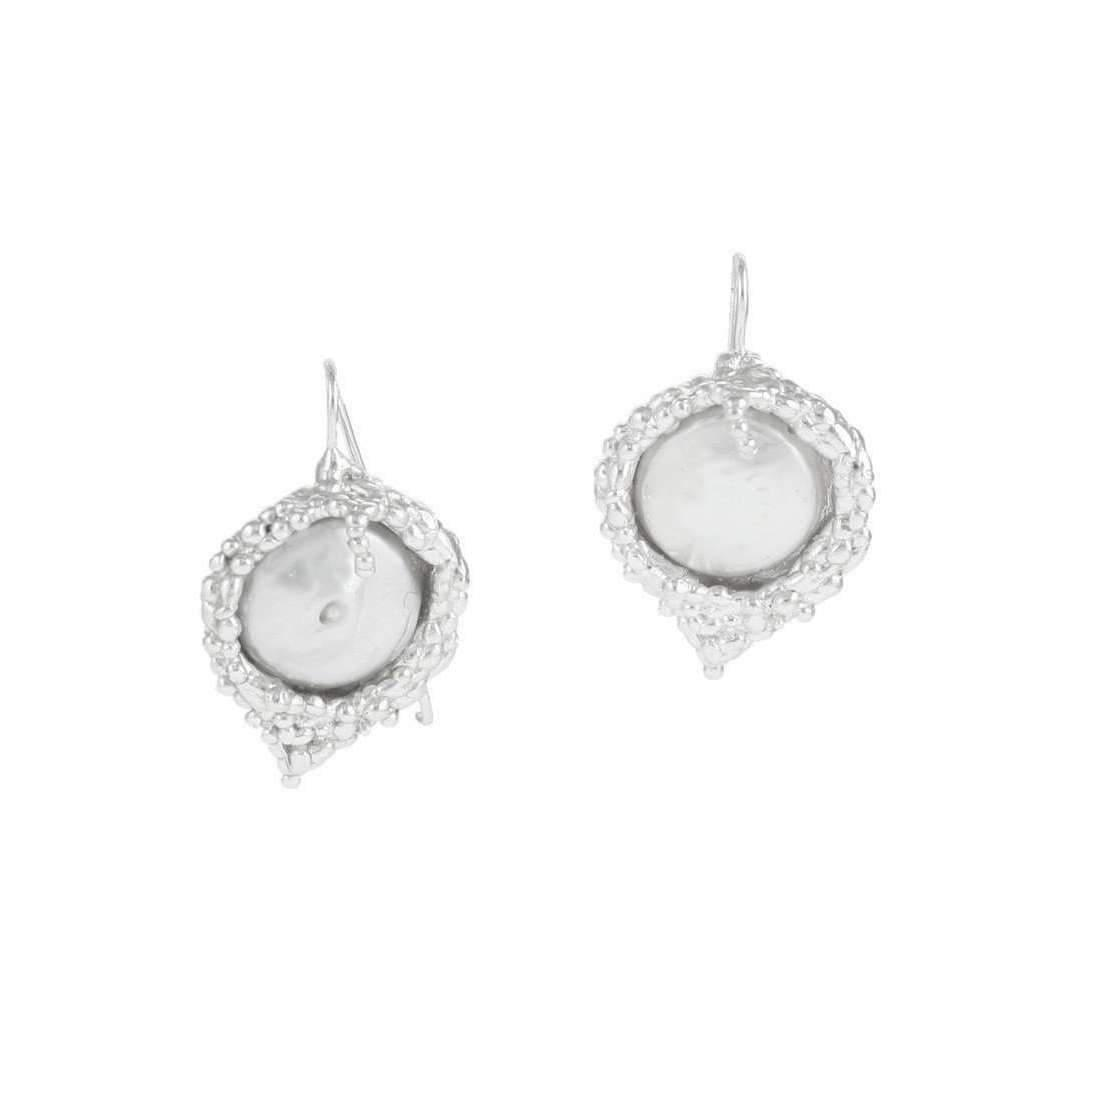 Militza Ortiz Organica Double Silver Pearl Earring rYyDHoUk1X